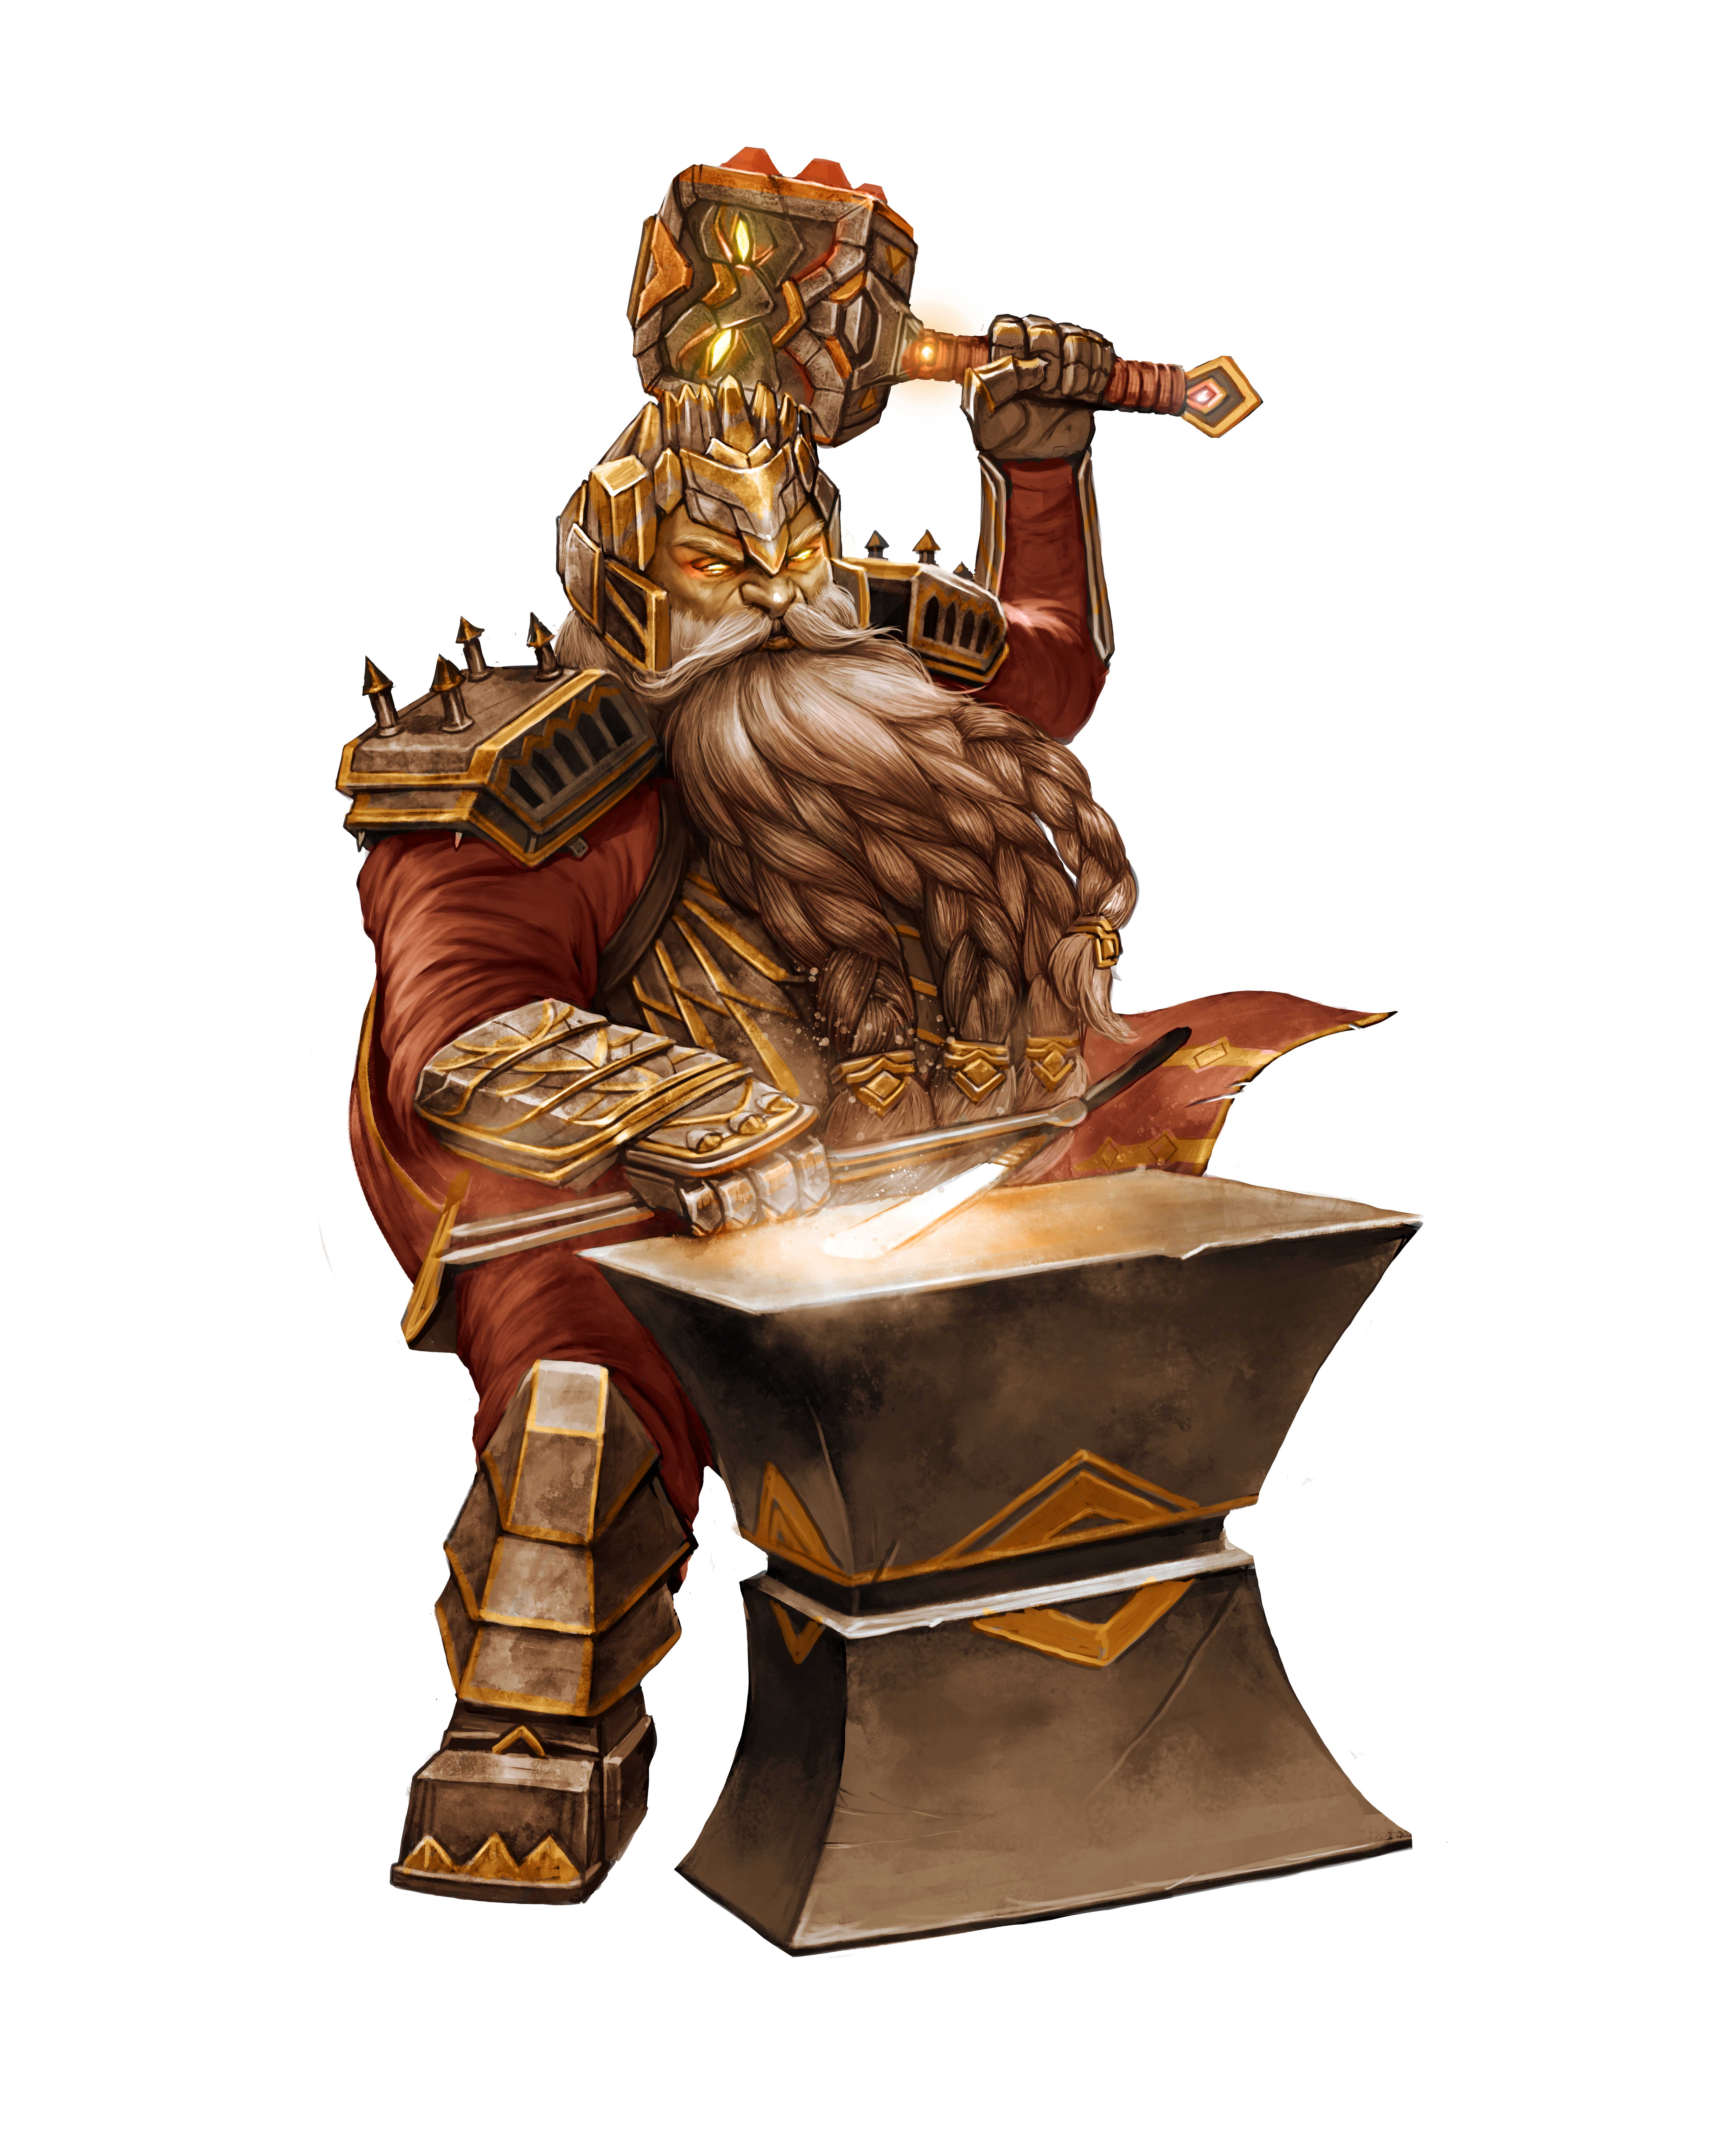 Torag, dwarven god of the forge and strategy, strikes an iron at his anvil.